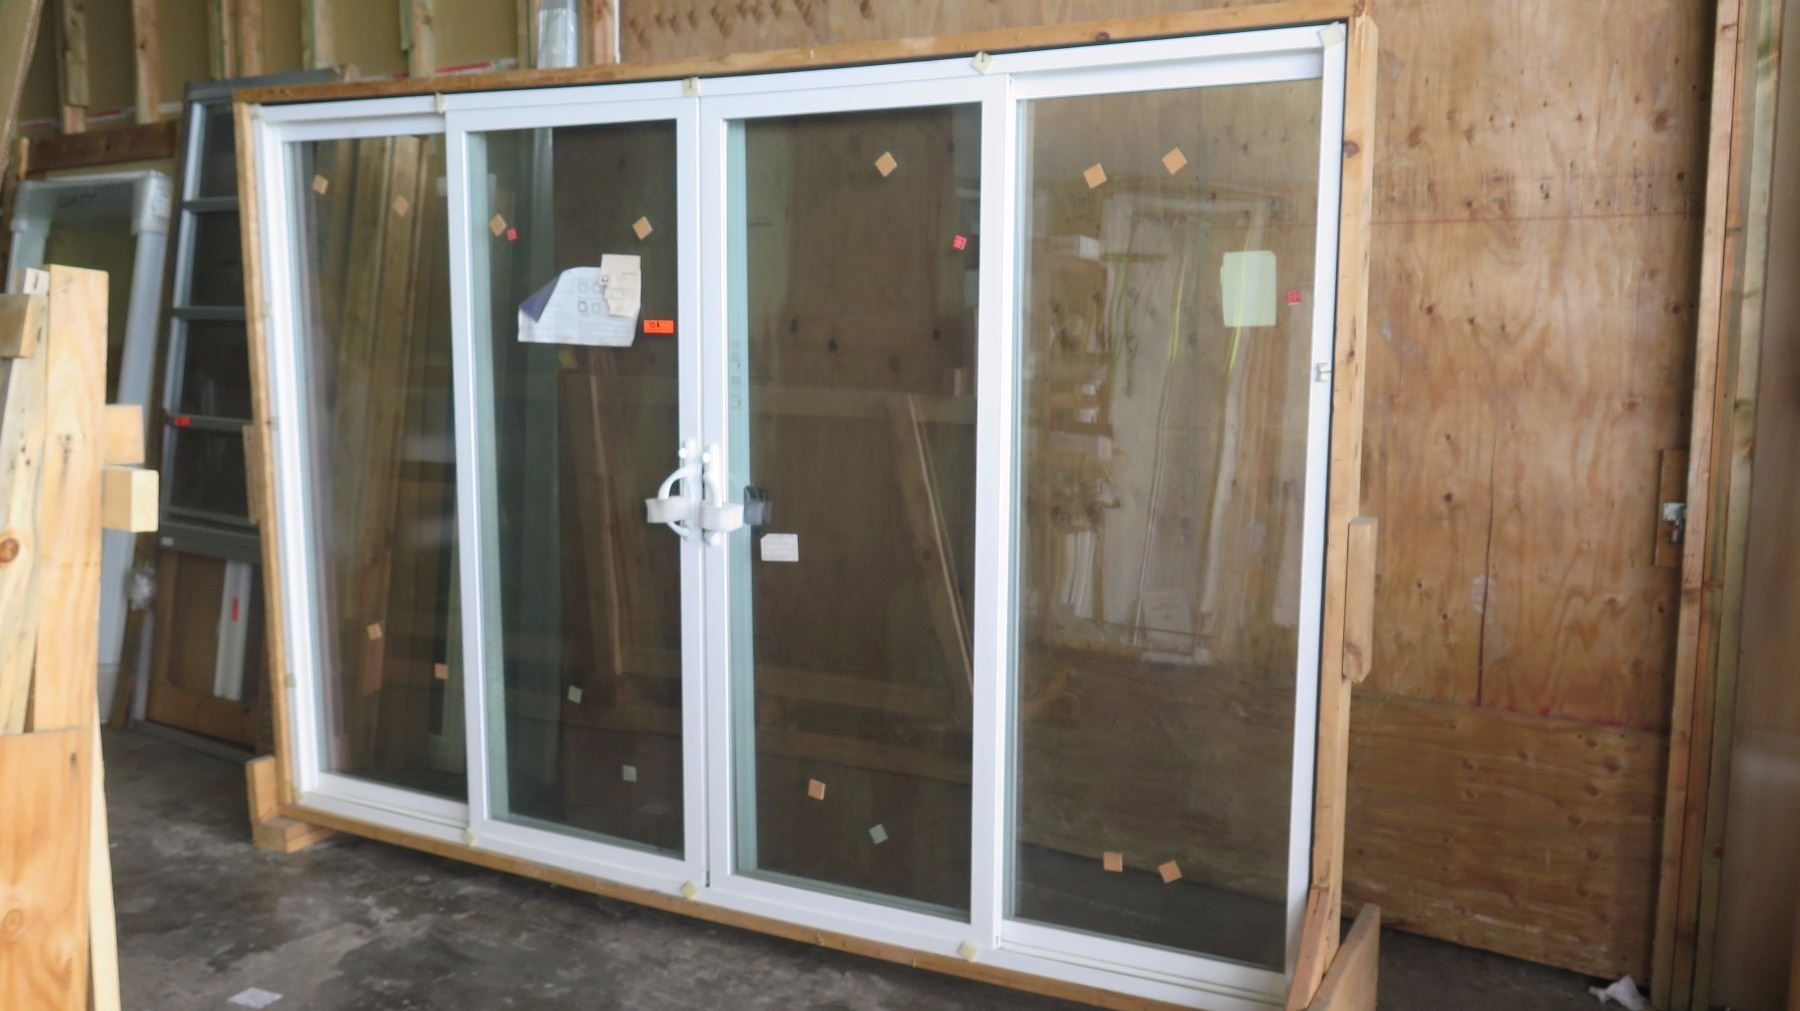 4 Panel Patio Sliding Glass Doors W Screen White Vinyl 117 13 16